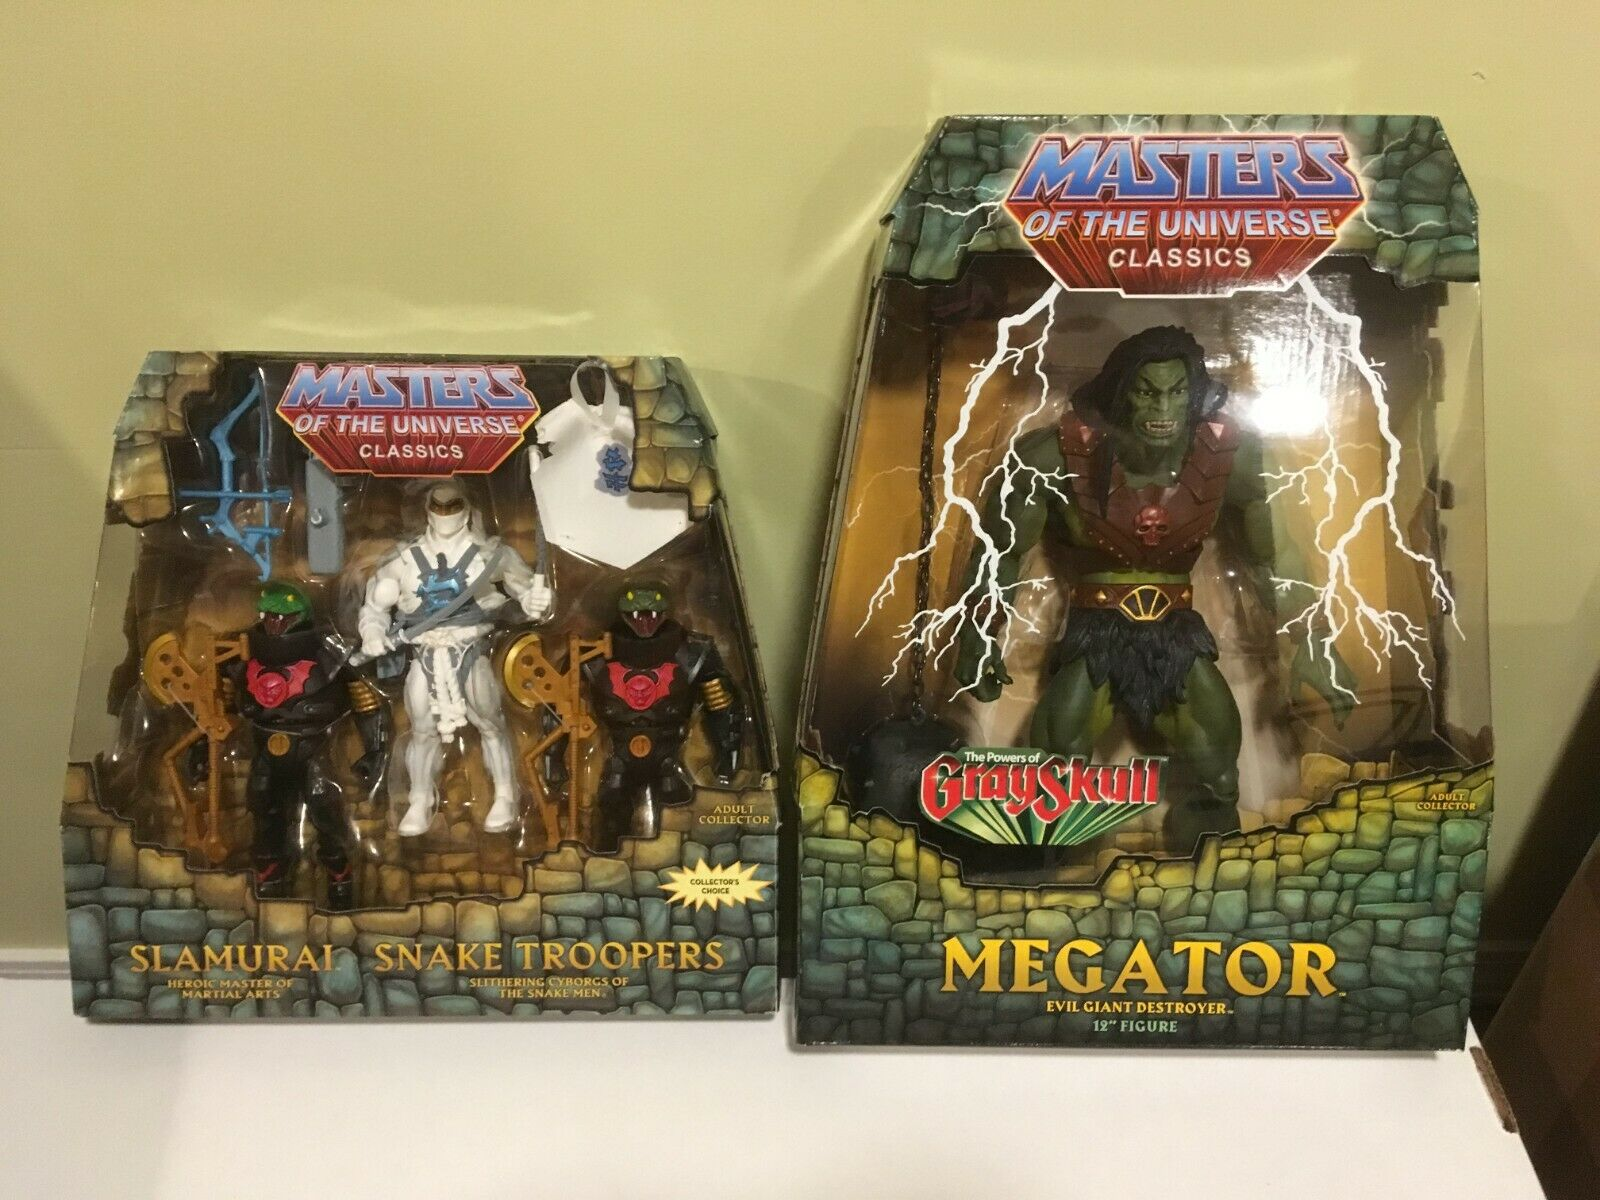 SLAMURAI SNAKE TROOPERS (Power Con) & MEGATOR Masters Of The Universe Classics